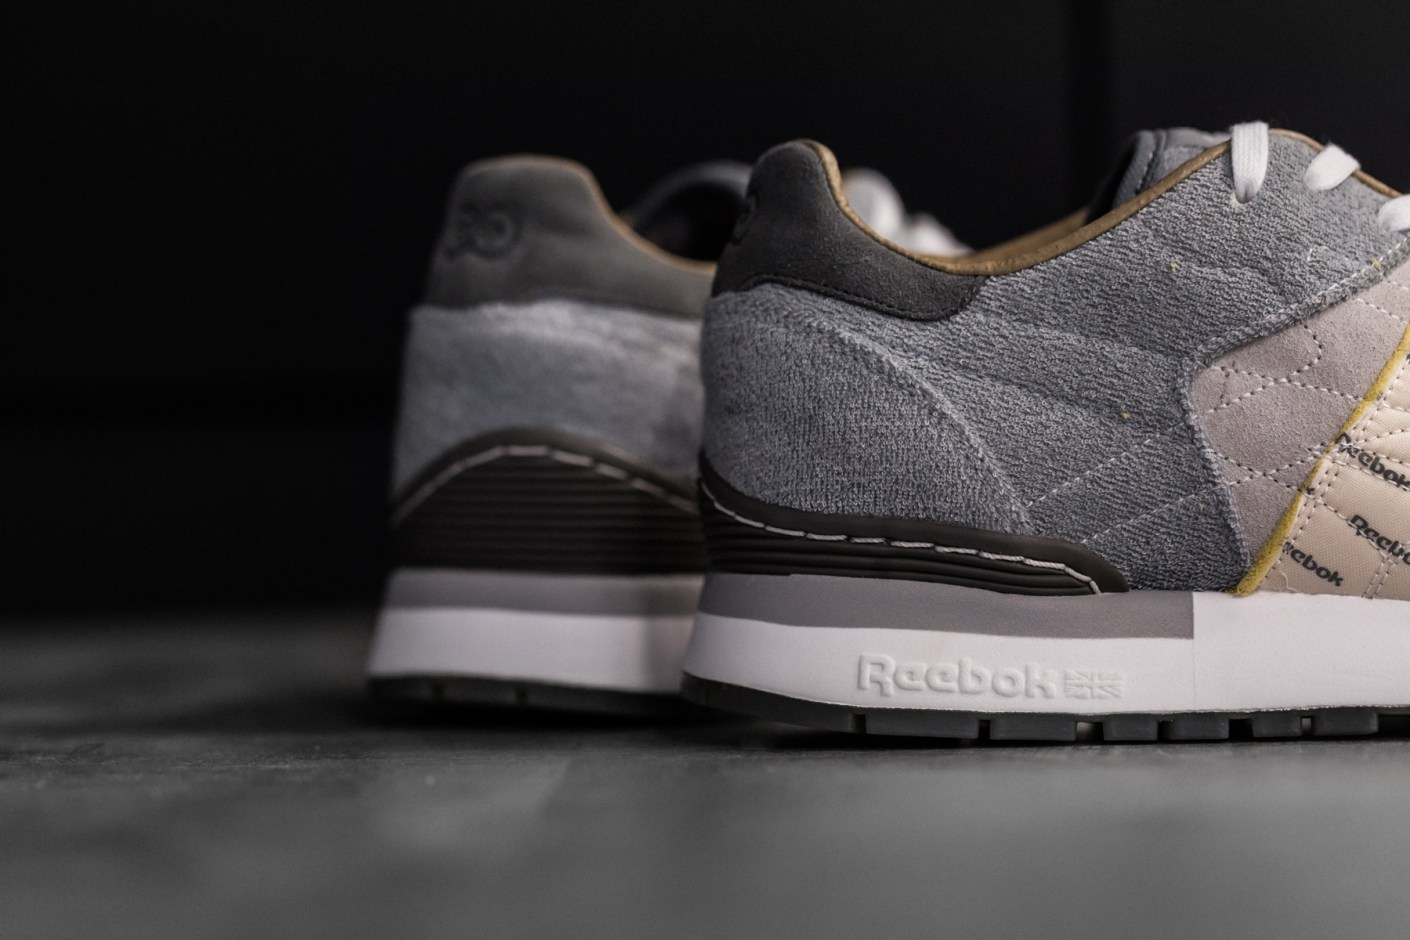 Image of Garbstore x Reebok 2014 Fall/Winter CL Leather 6000